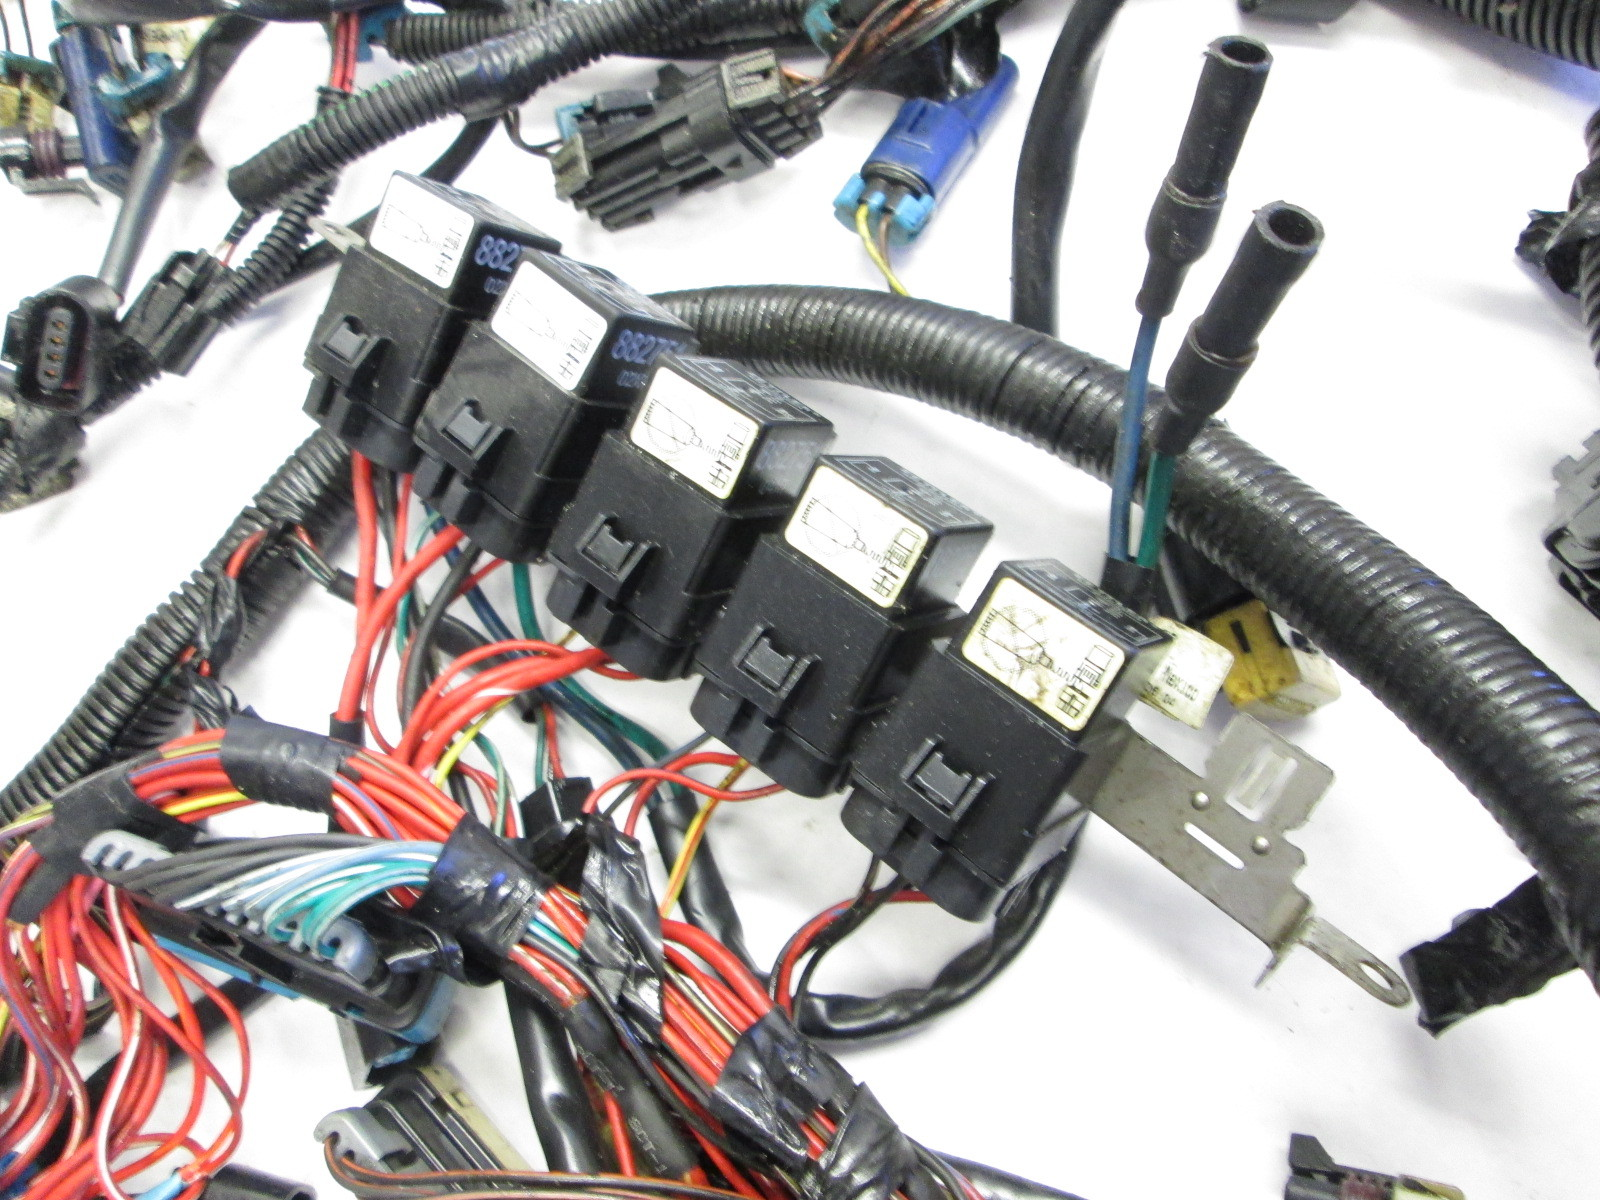 Peachy Motorguide Wiring Harness Circuit Diagram Template Wiring Digital Resources Indicompassionincorg